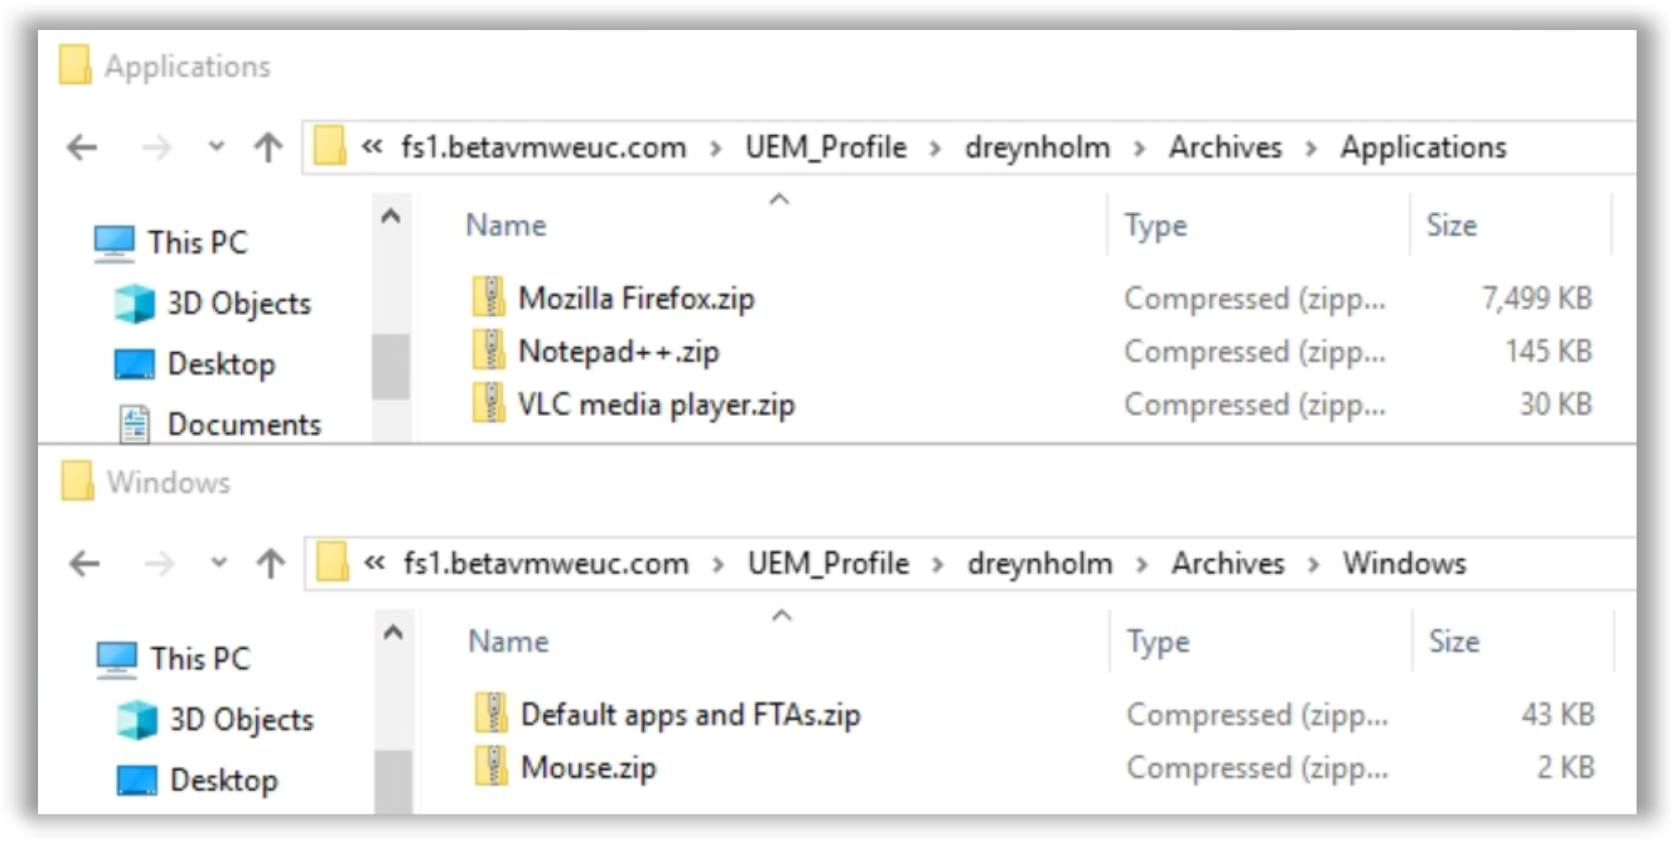 Sample Windows and Application Profile Archives